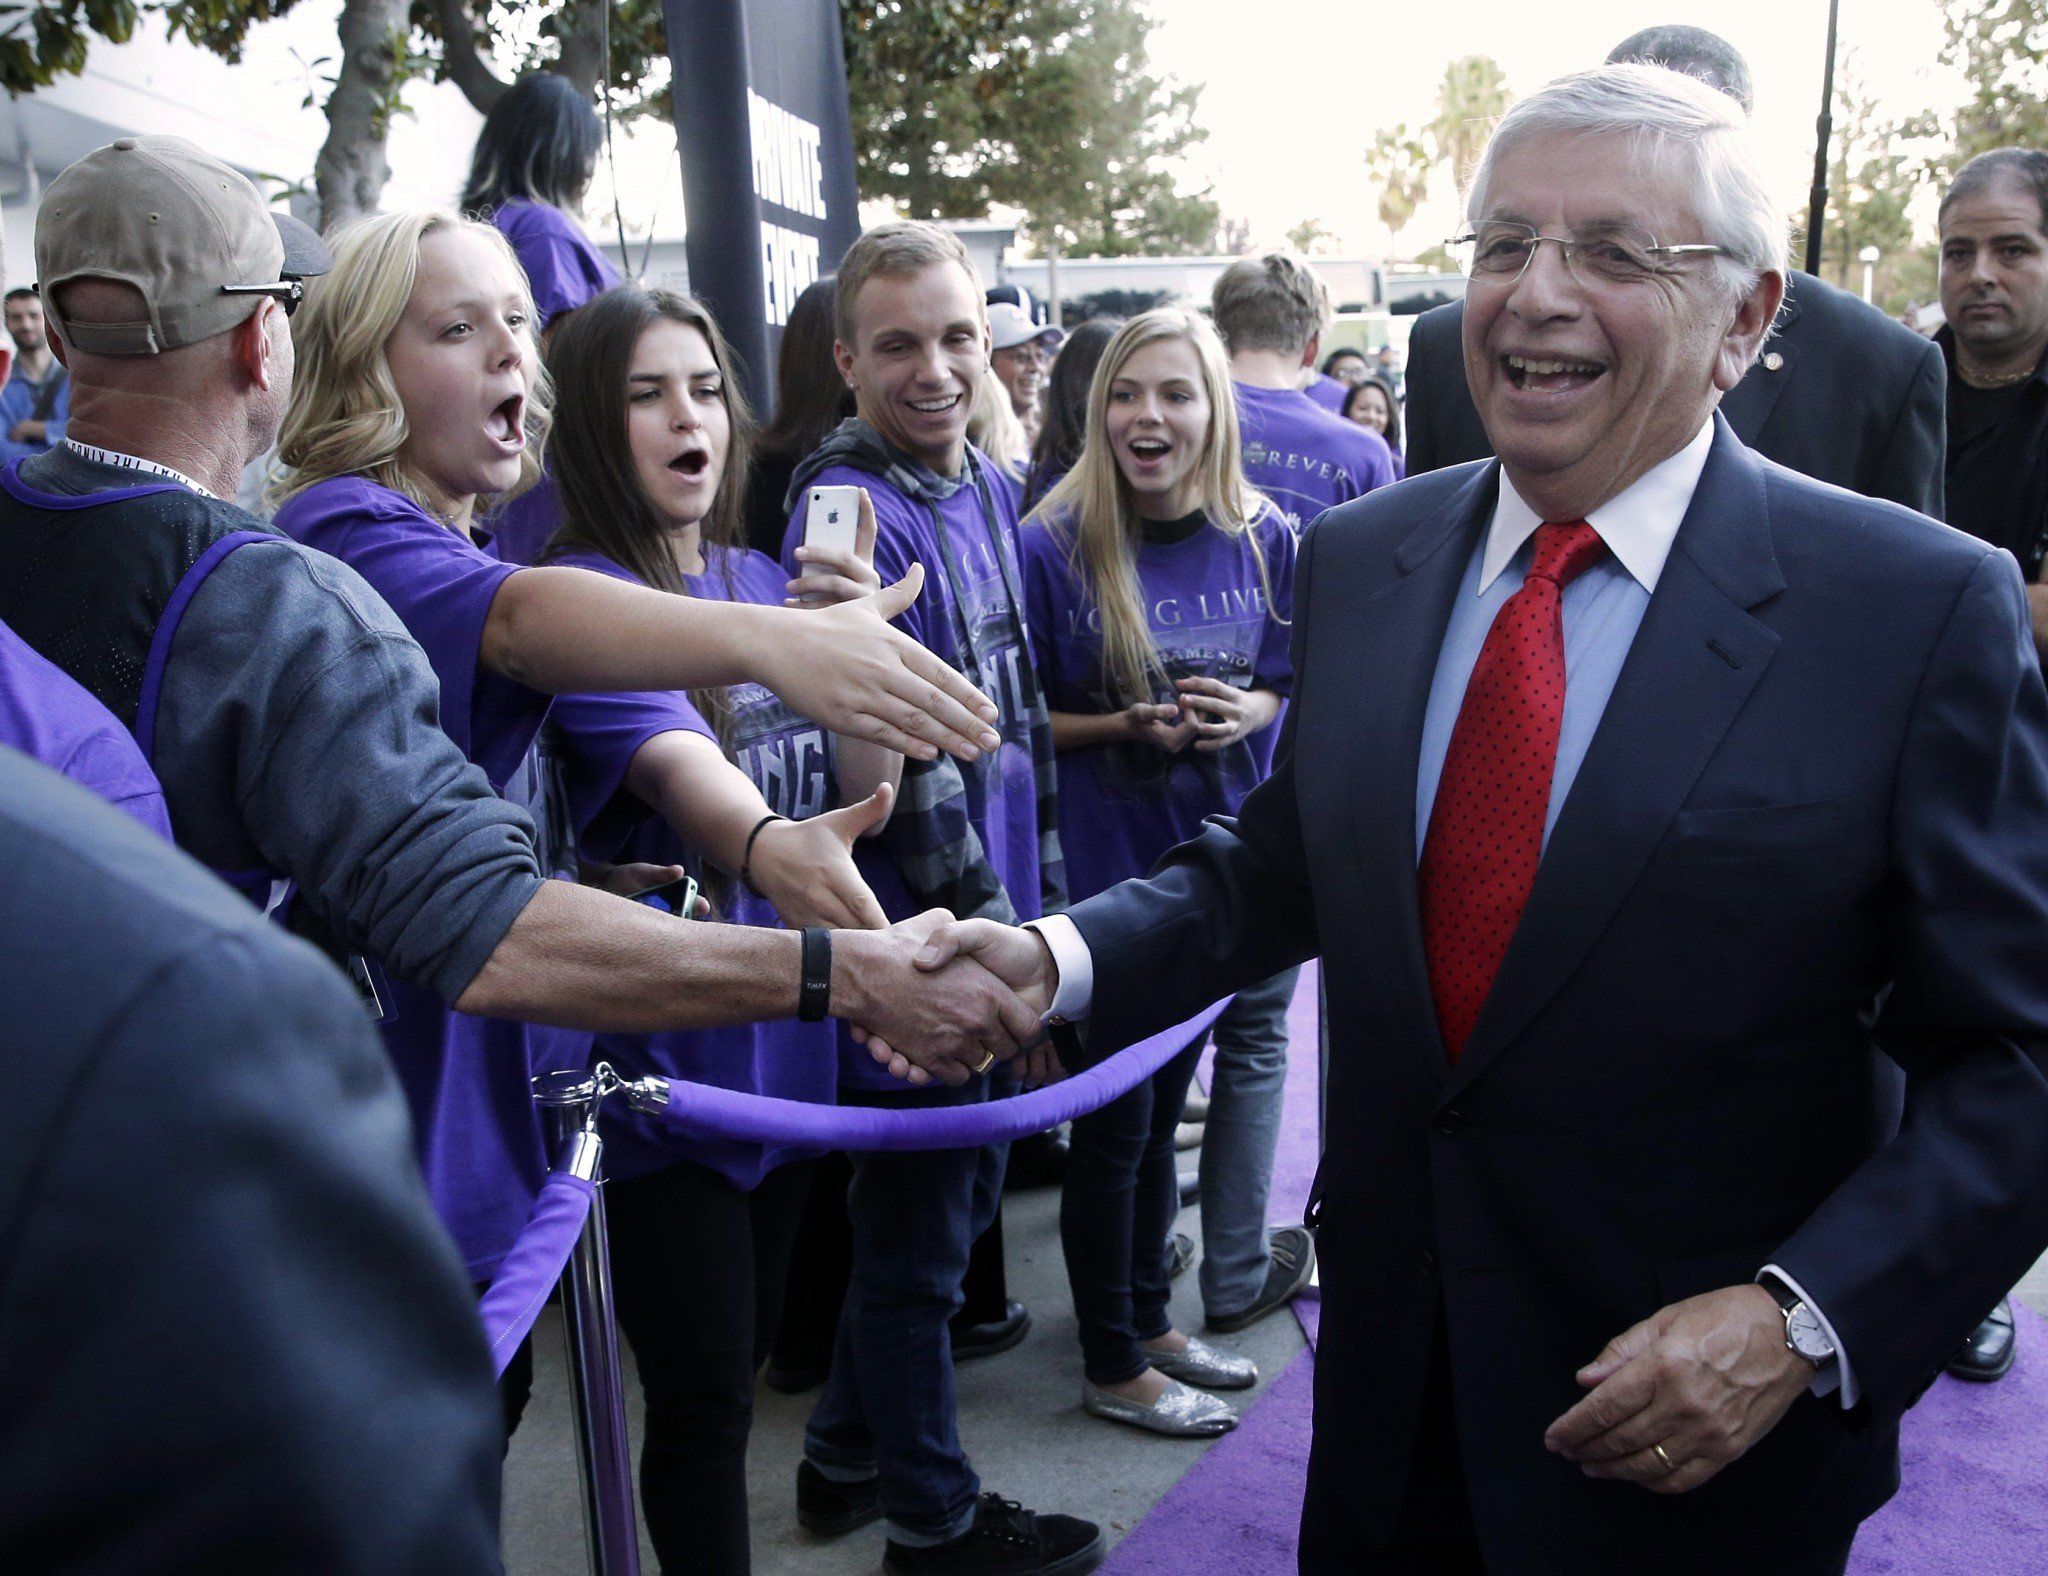 Then-NBA Commissioner David Stern greets Sacramento Kings fans as he arrives at Sleep Train Arena to attend a Kings game on Oct. 30, 2013. (AP/Rich Pedroncelli)